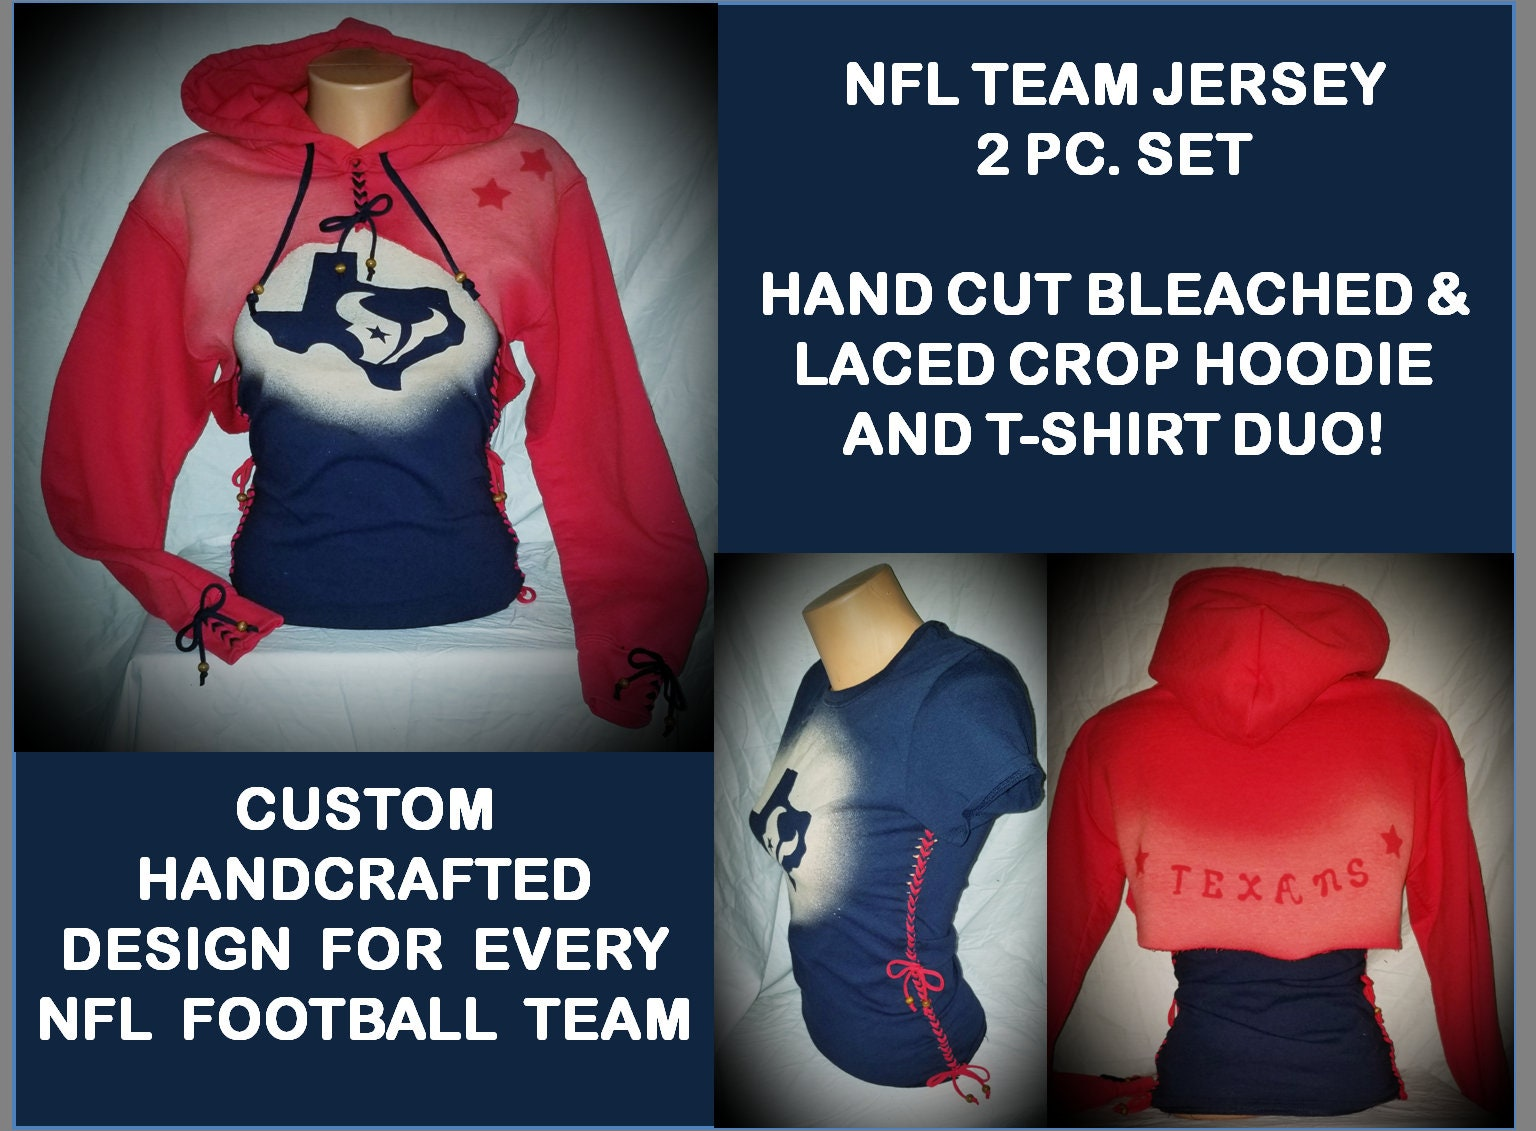 7e059e05 2 pc. set Womens girls NFL TEAM Custom crop hoodie t shirt set sweatshirt  Bleached and hand cut laced. Pick your team Jersey!